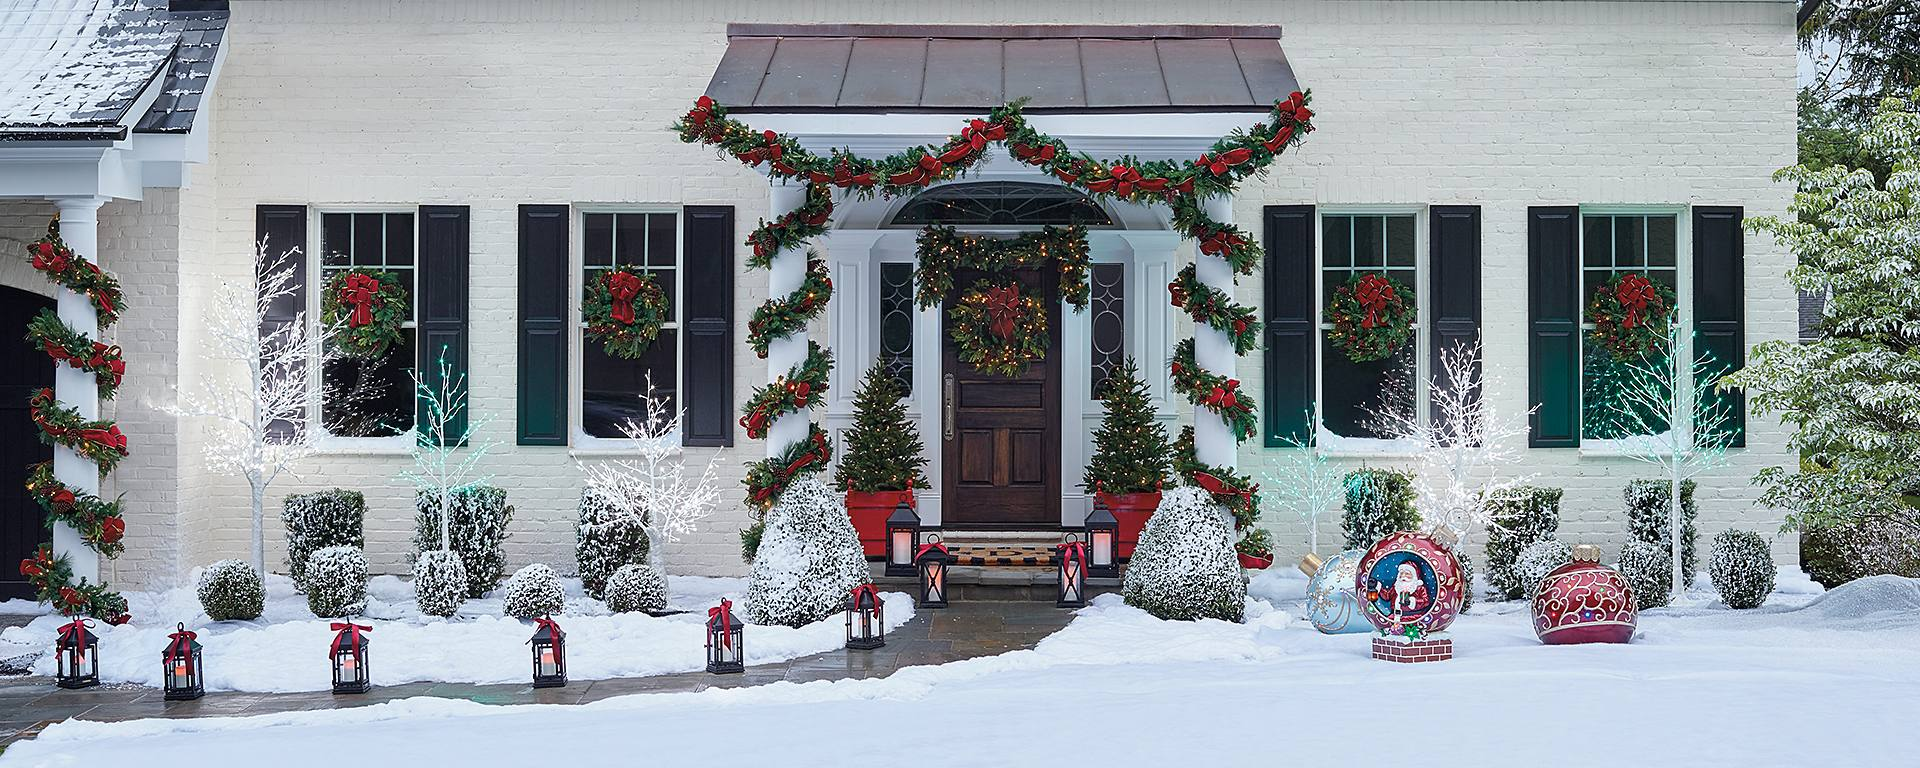 What's Your Holiday Outdoor Decor Style?